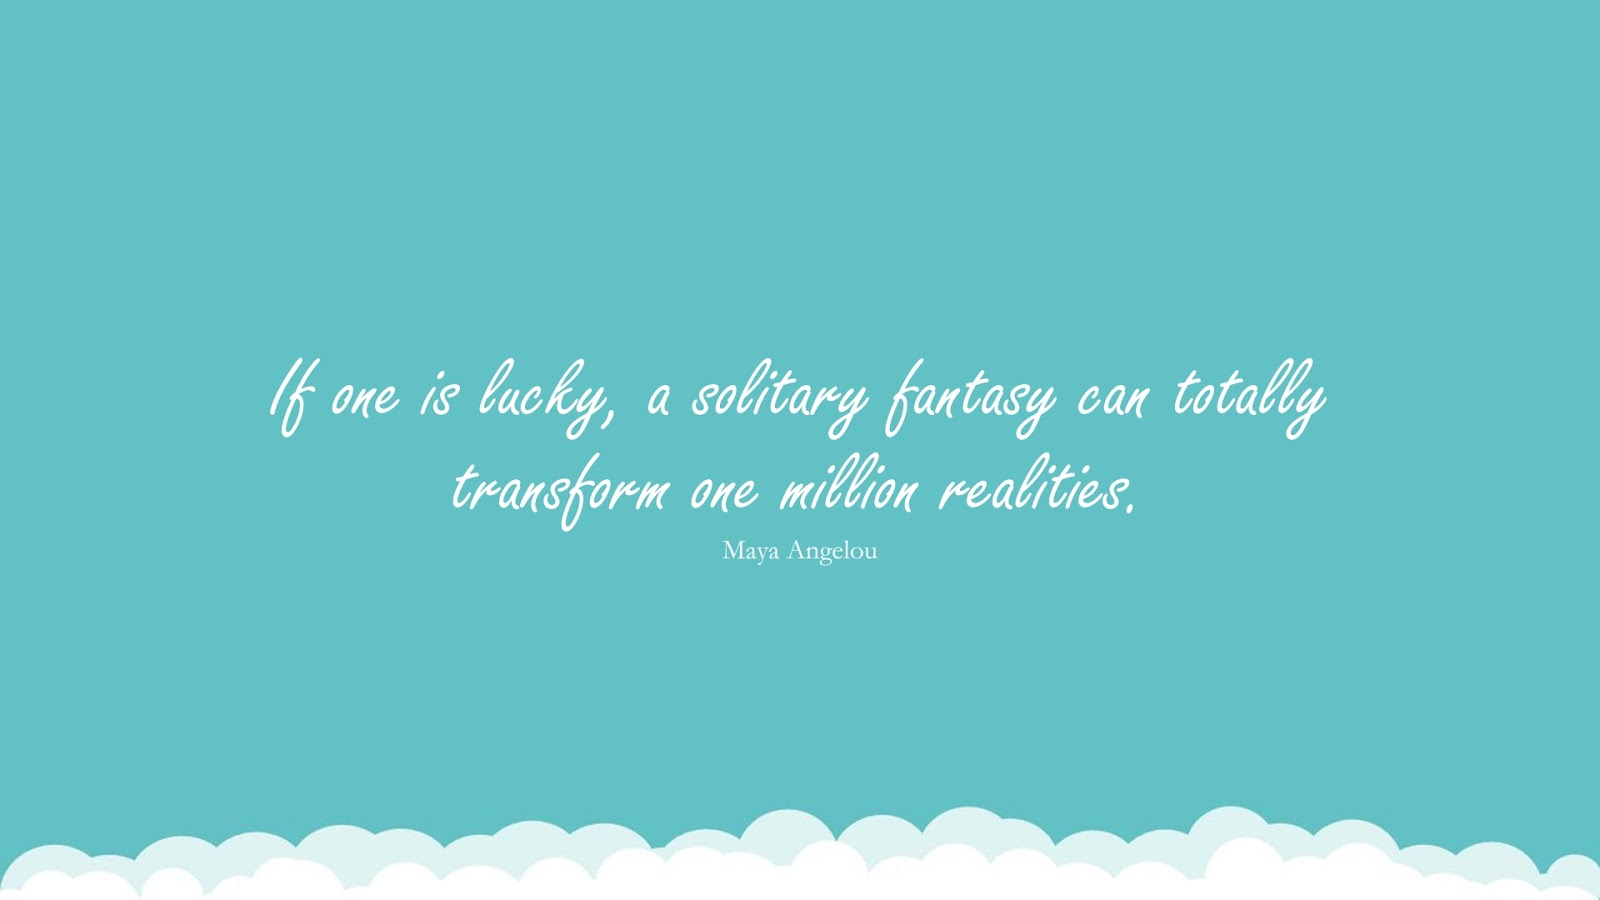 If one is lucky, a solitary fantasy can totally transform one million realities. (Maya Angelou);  #MayaAngelouQuotesandSayings